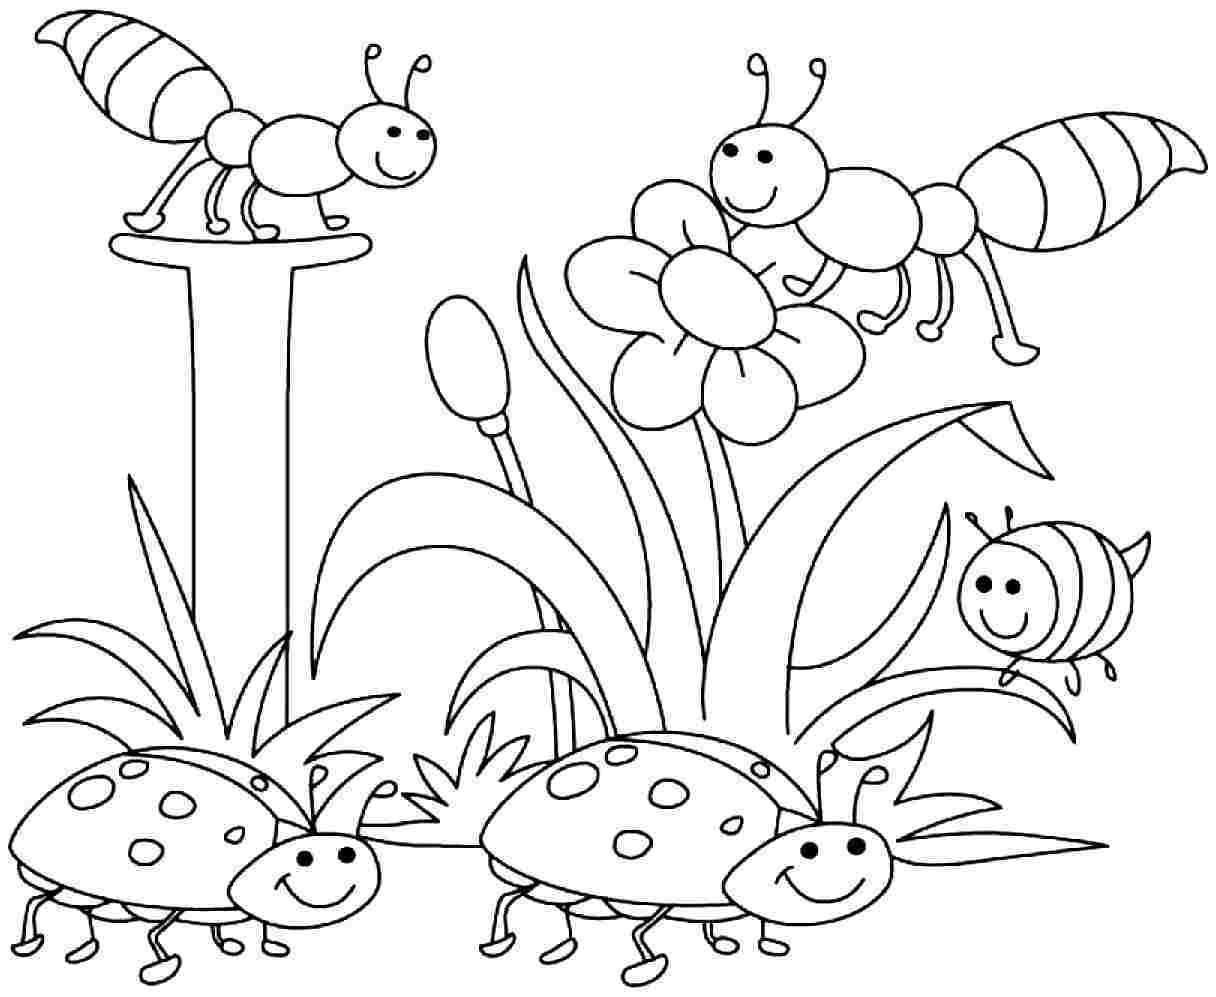 1216x997 Fascinating Printable Spring Coloring Pages Kindergarten Many